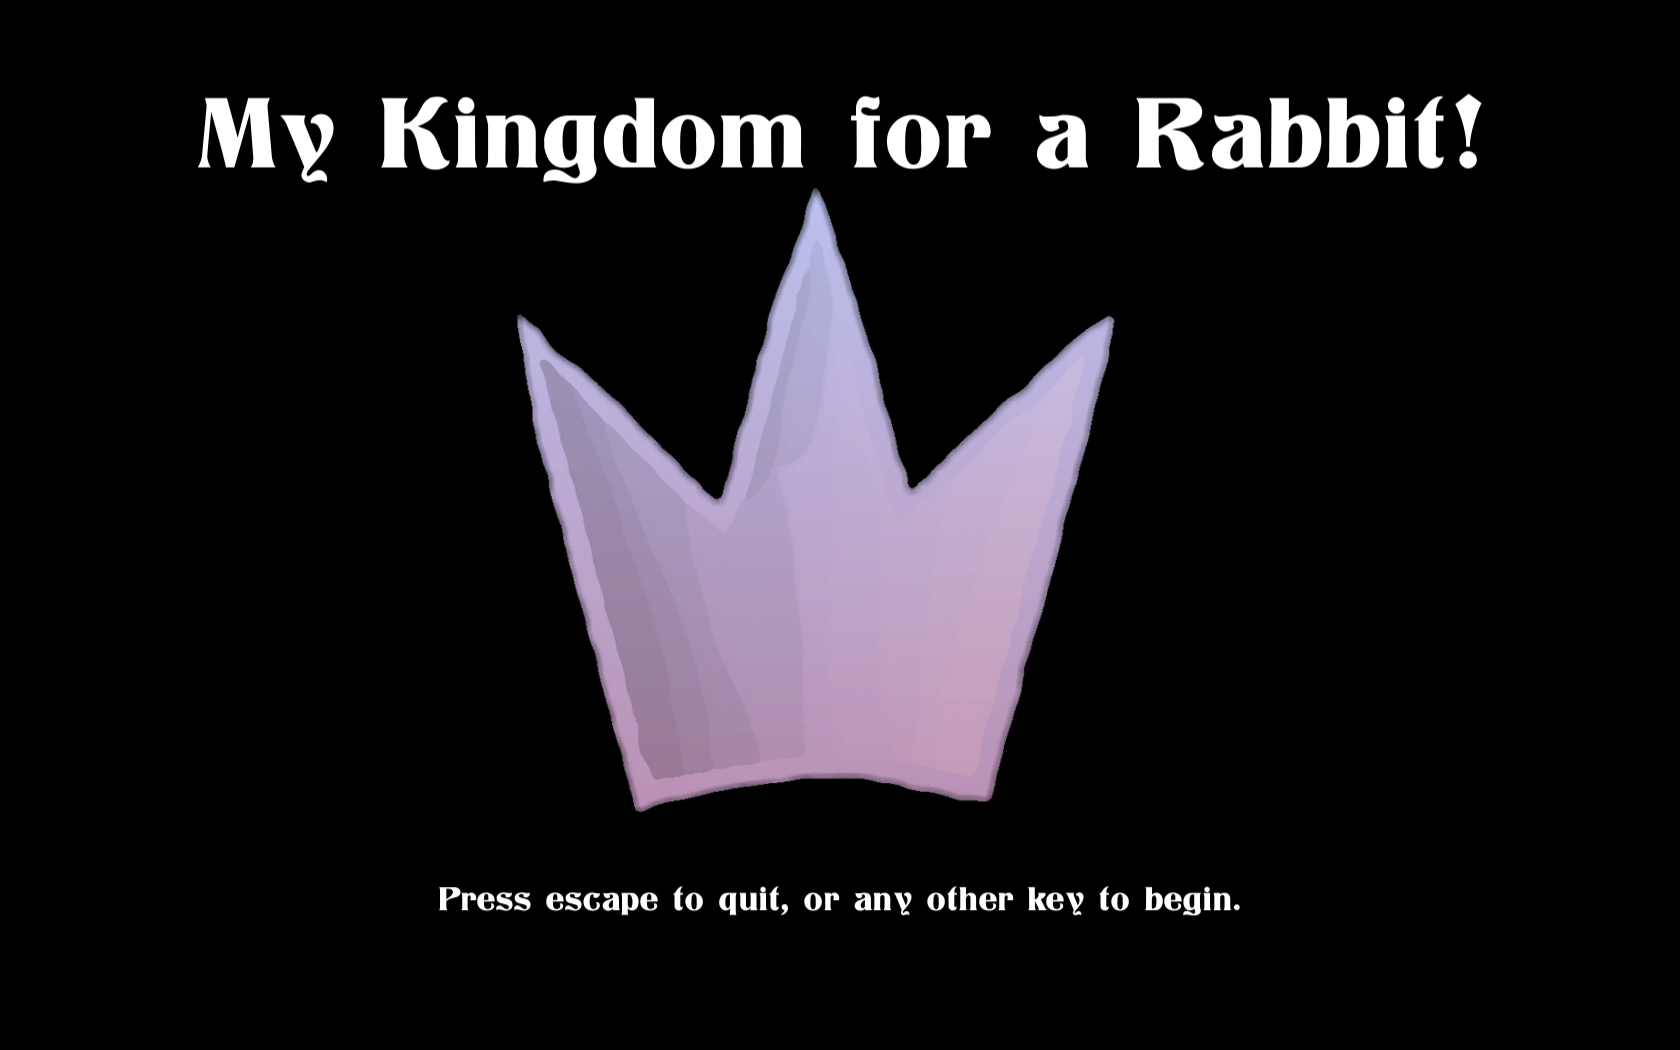 My Kingdom for a Rabbit!